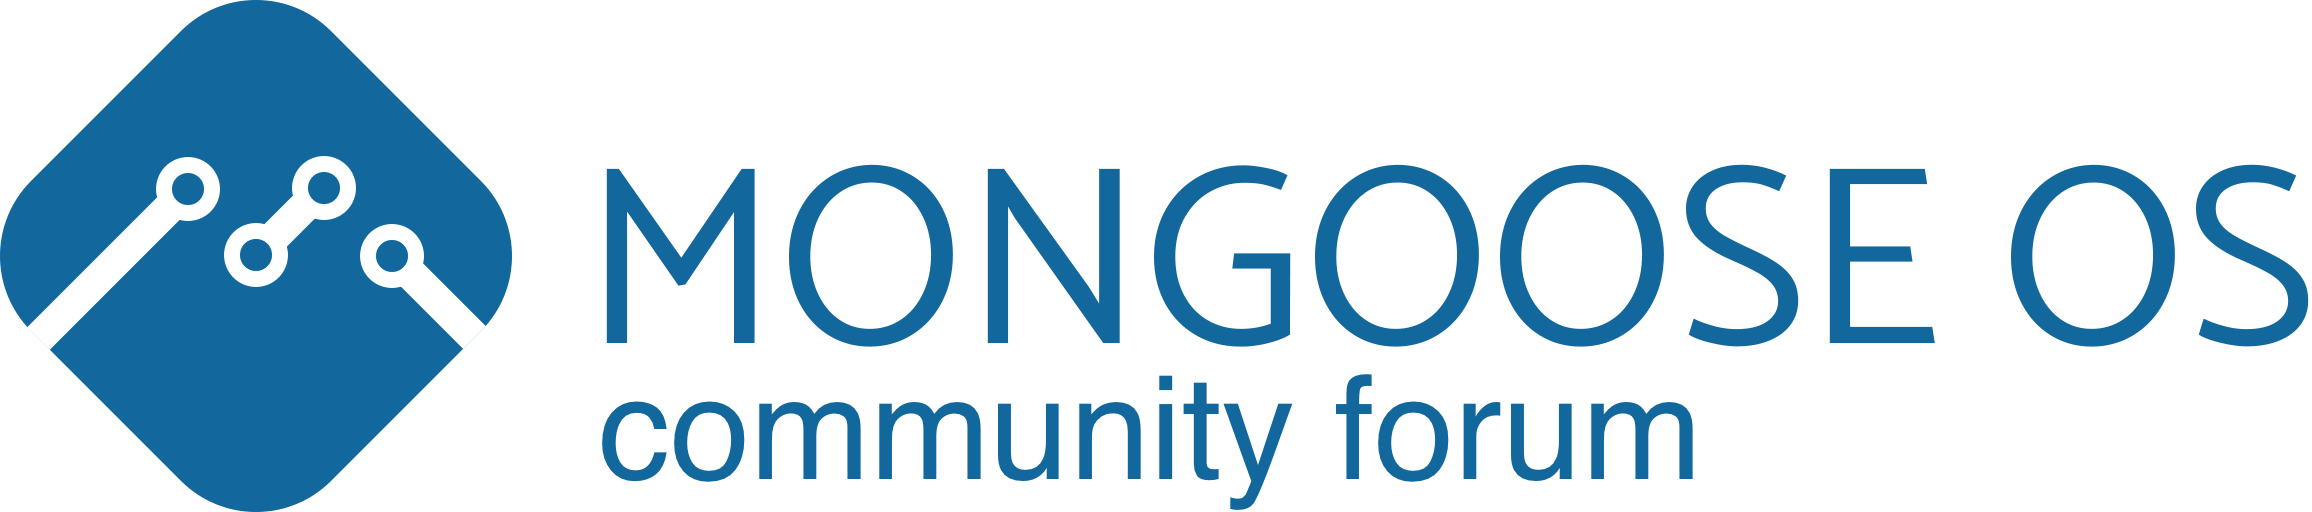 Mongoose OS community forum